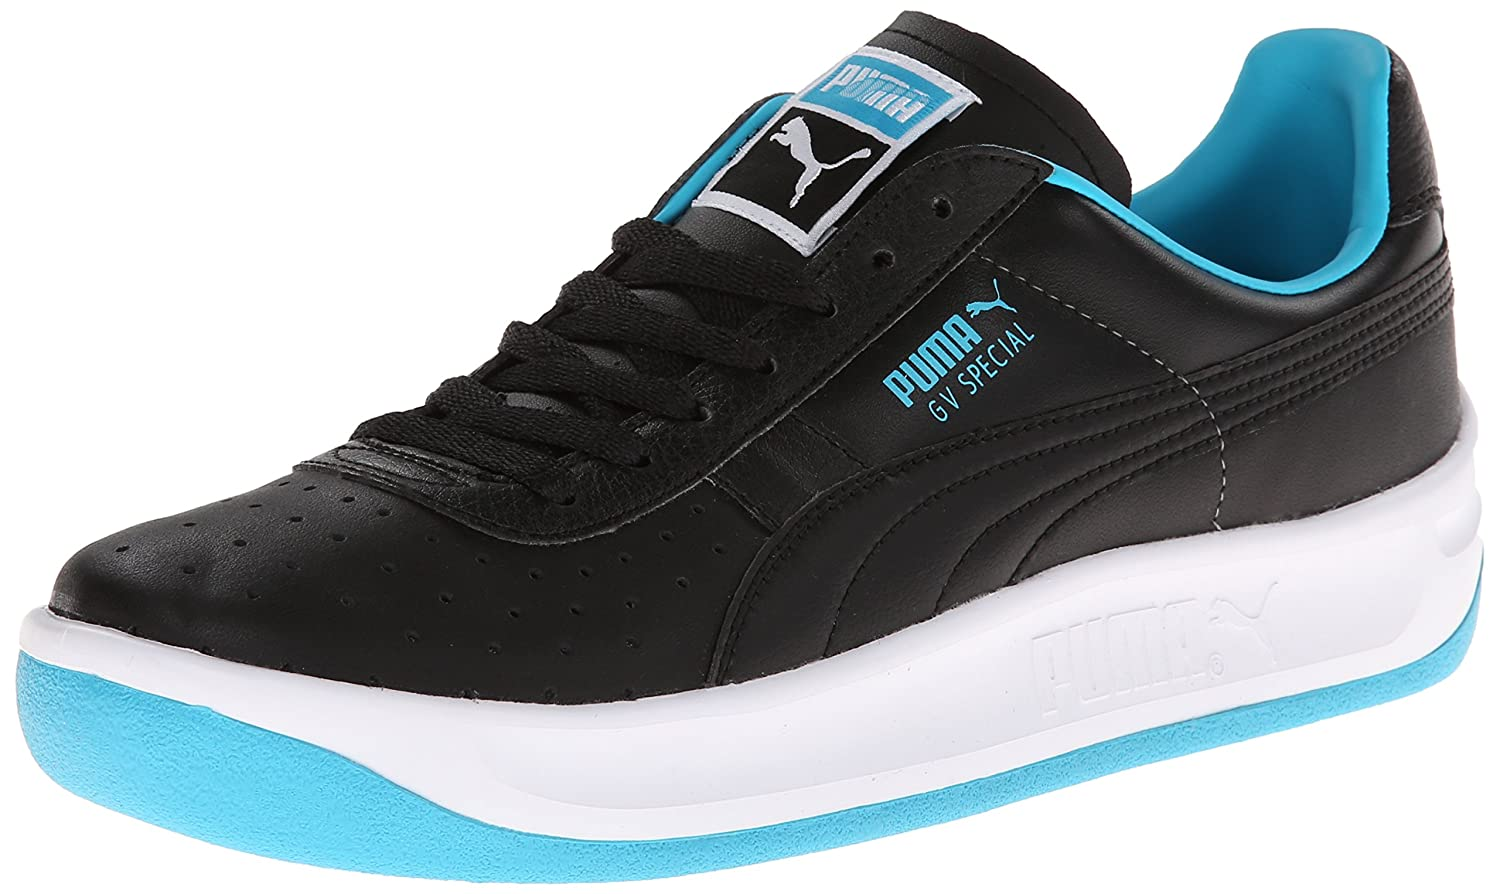 PUMA Men's GV Special Fashion Sneaker B00GV4O17M 11.5 M US|Black/Scuba Blue